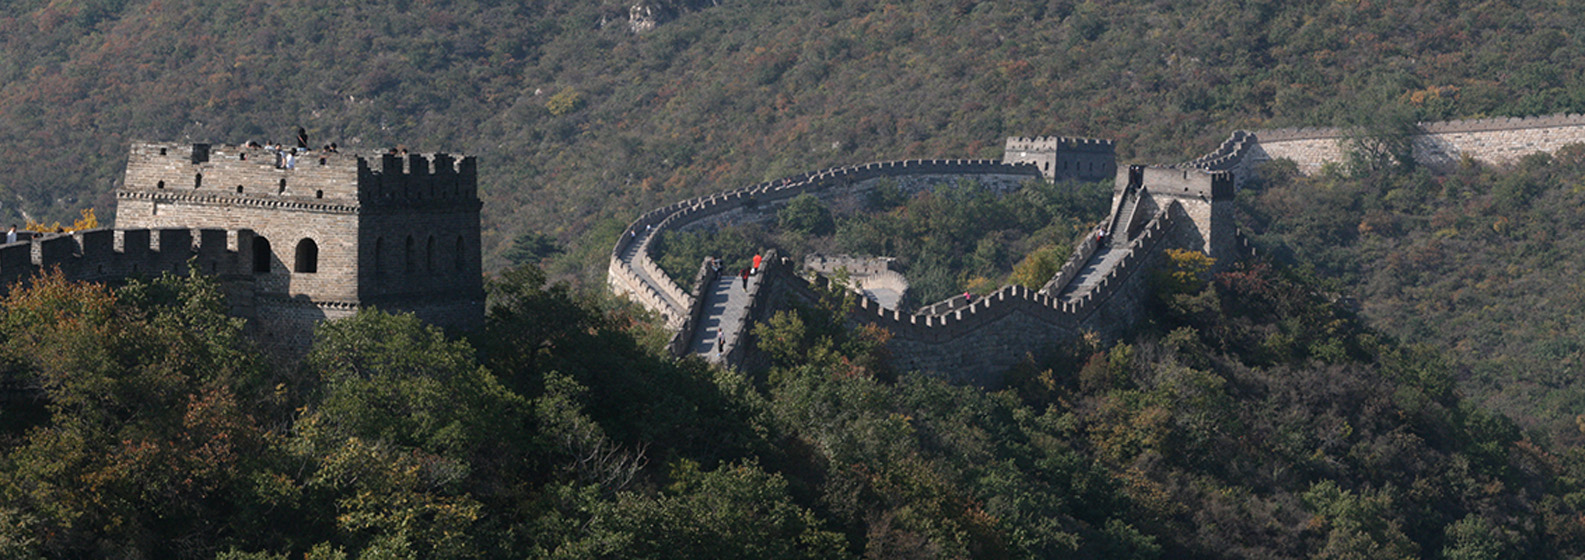 a critical look at the significance of the great wall of china The great wall has been synonymous with china since travelers and adventurers first spoke of the middle kingdom to the rest of the world the symbolism of the great wall is far greater today than its historical significance it is above all a landmark, regardless of the roles it played in history.